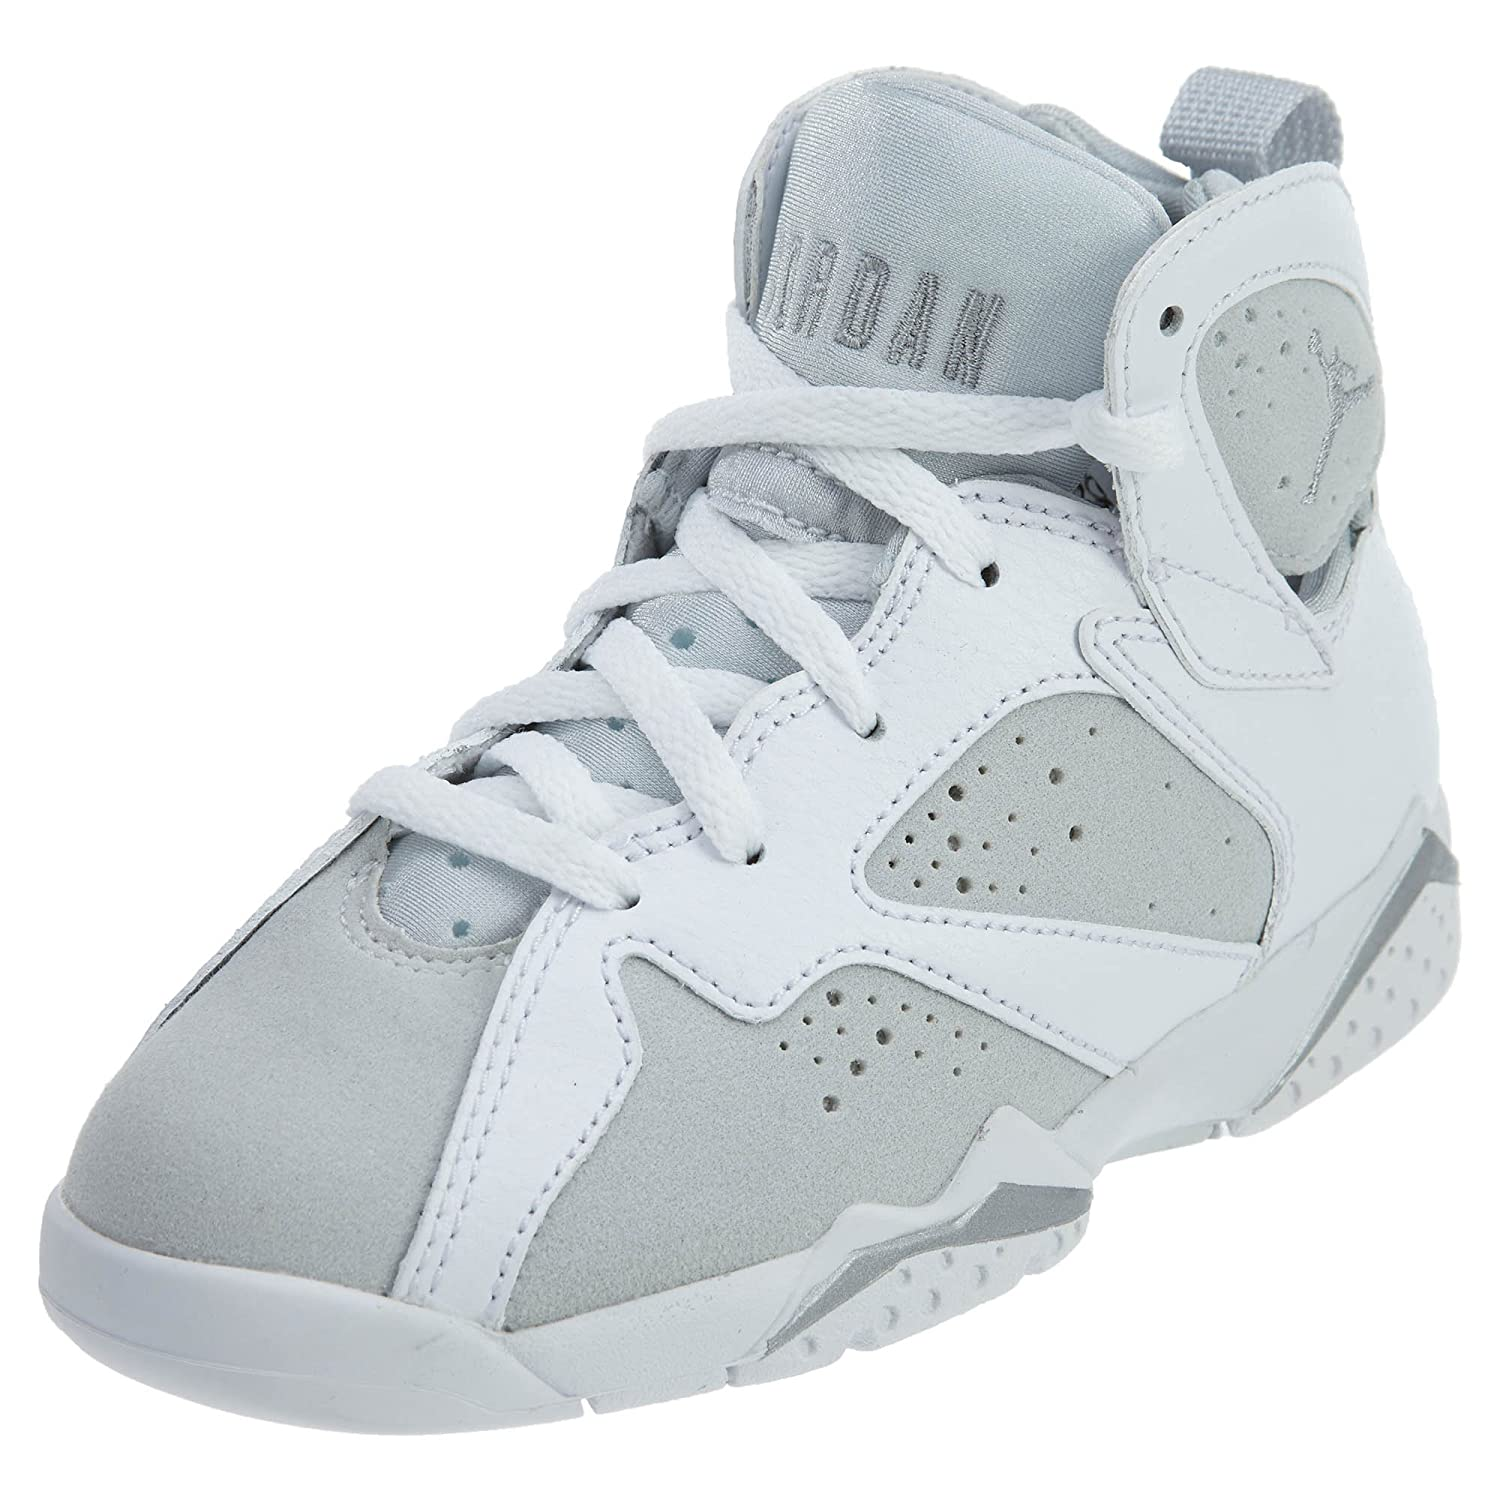 cheap for discount 4380a faac6 Amazon.com   Jordan Retro 7